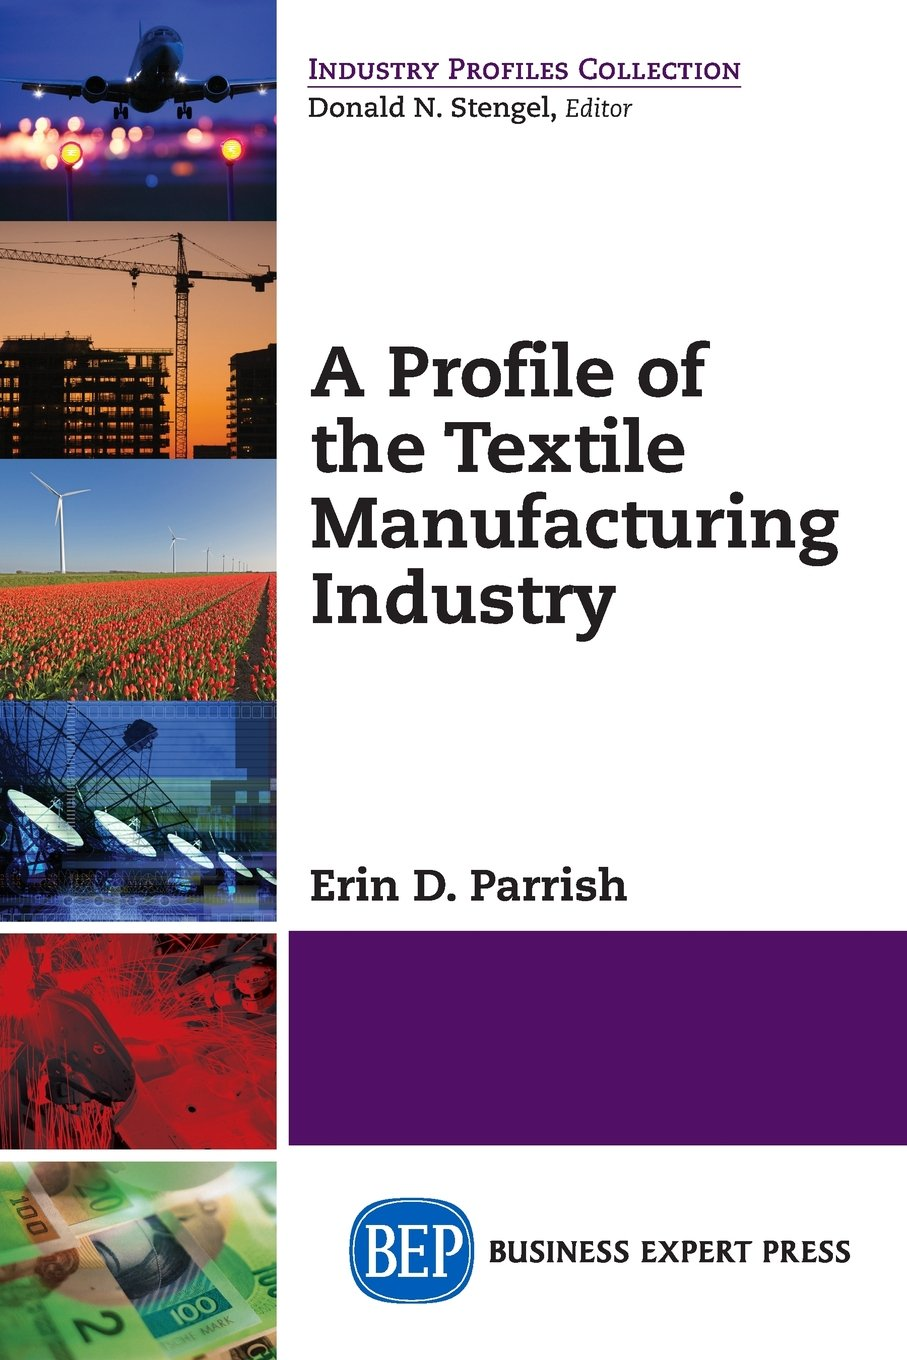 A Profile of the Textile Manufacturing Industry